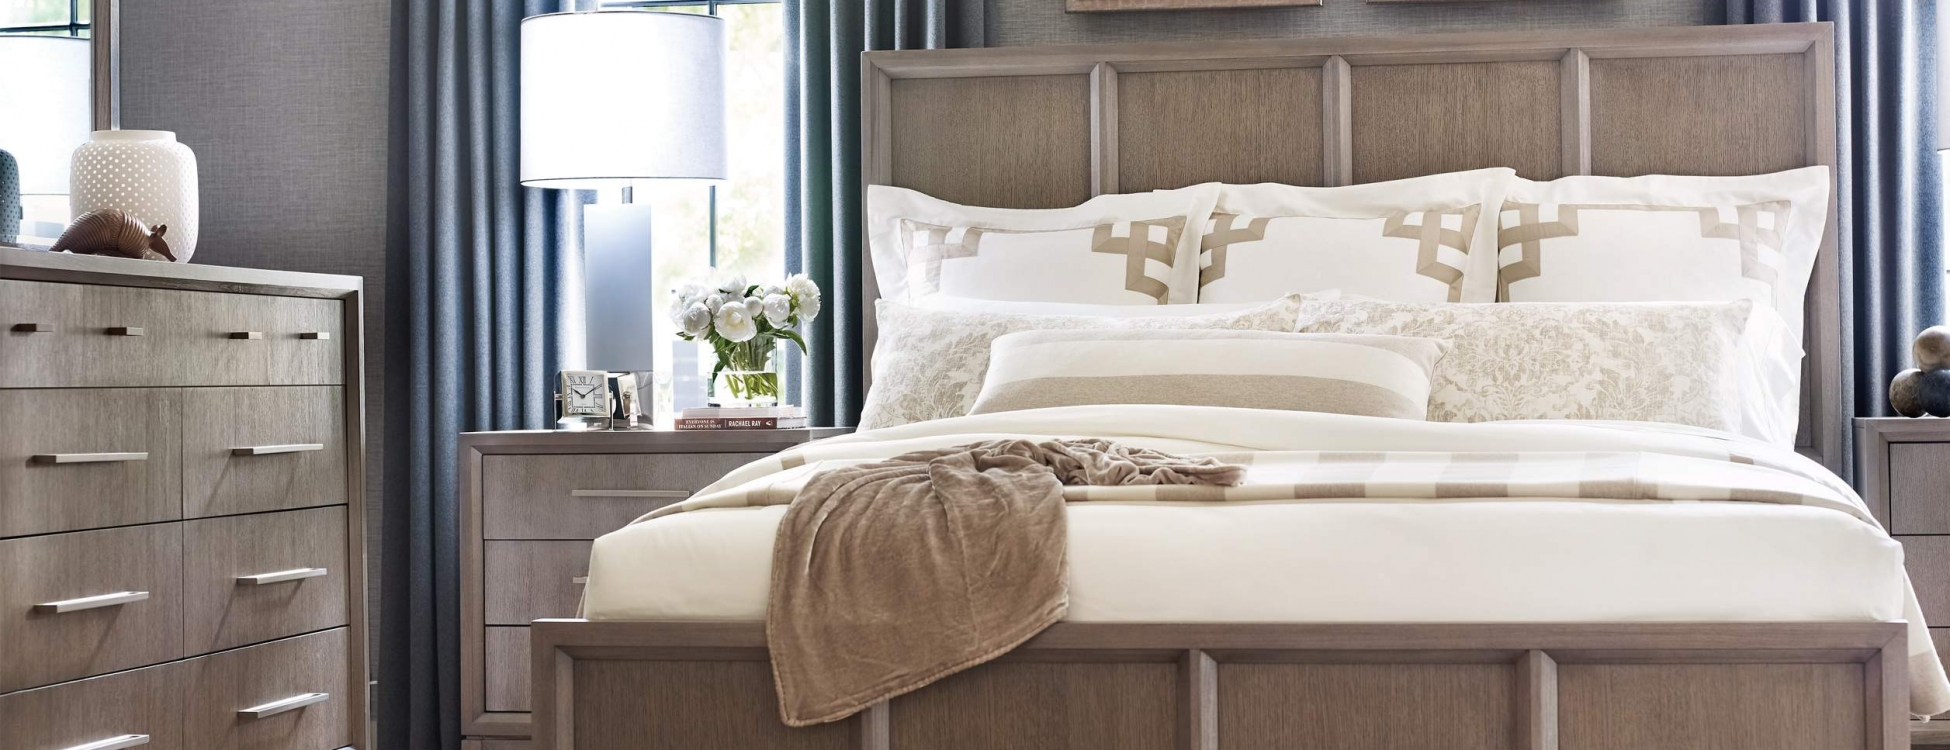 Home Bedroom Furniture Store In Long Island One Ten Home Furnishings